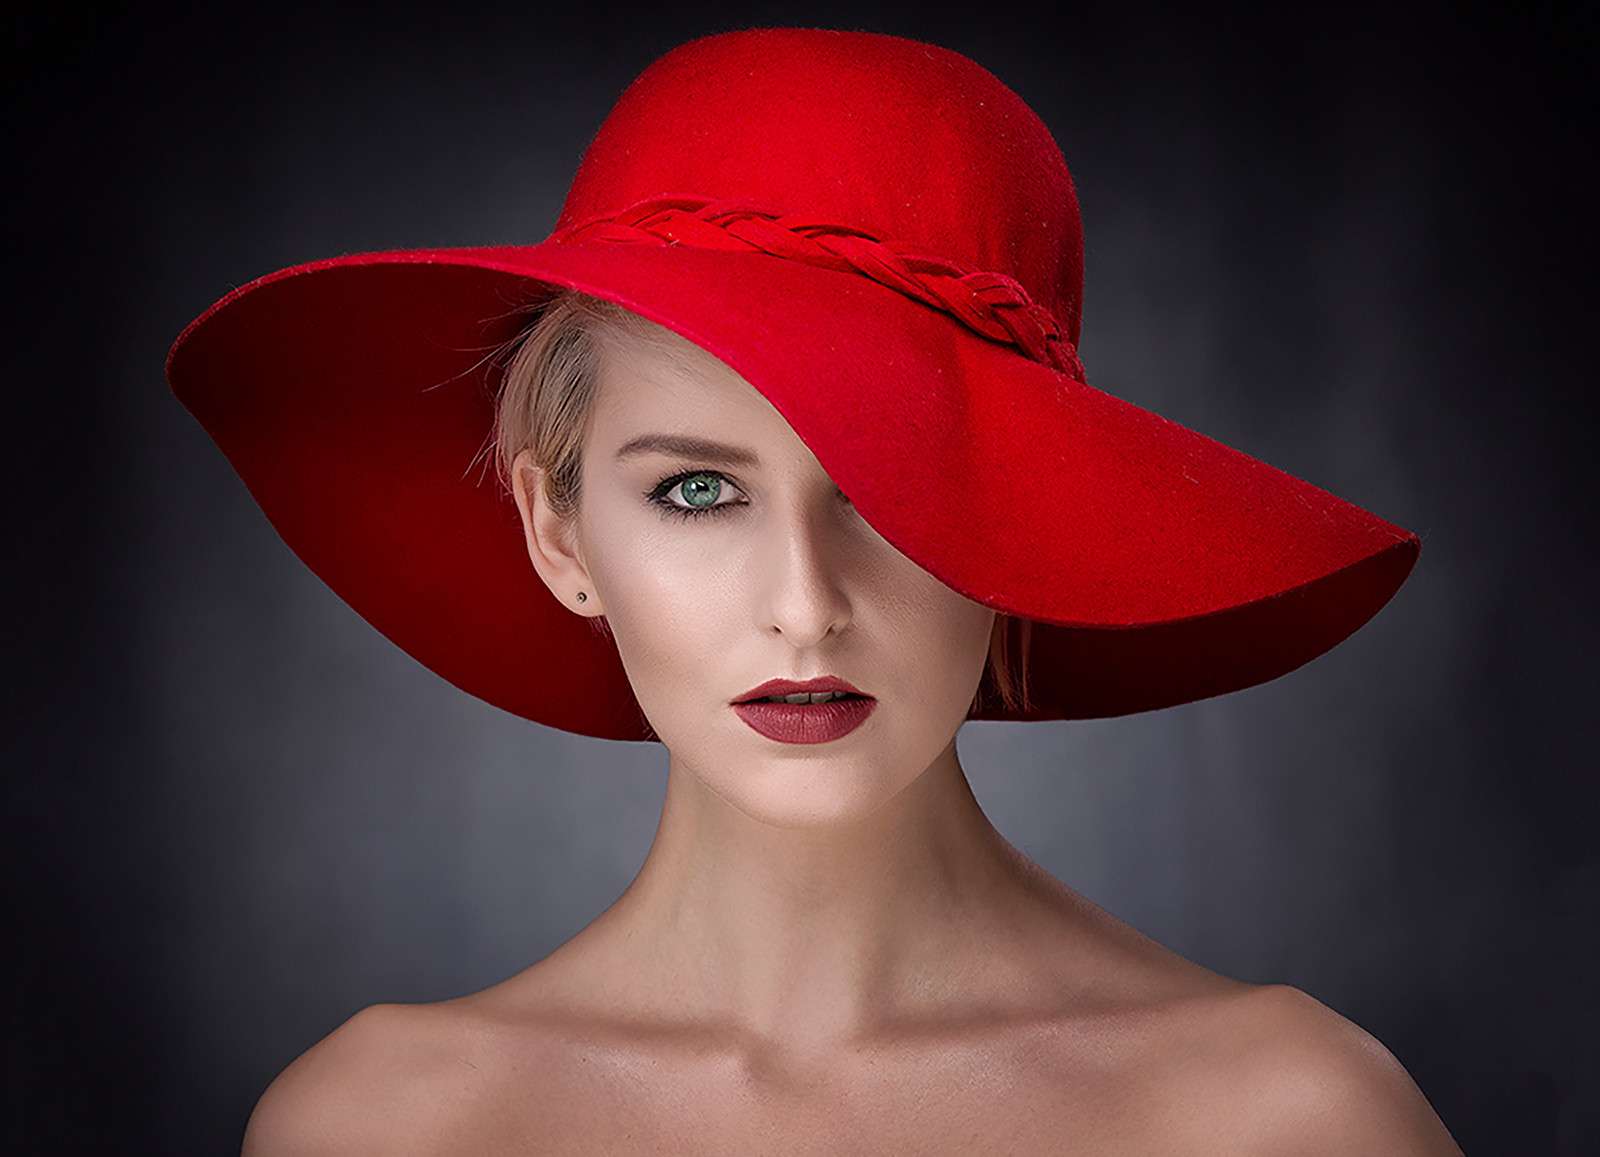 COLOUR - The Red Hat by Ross McKelvey (20 marks)